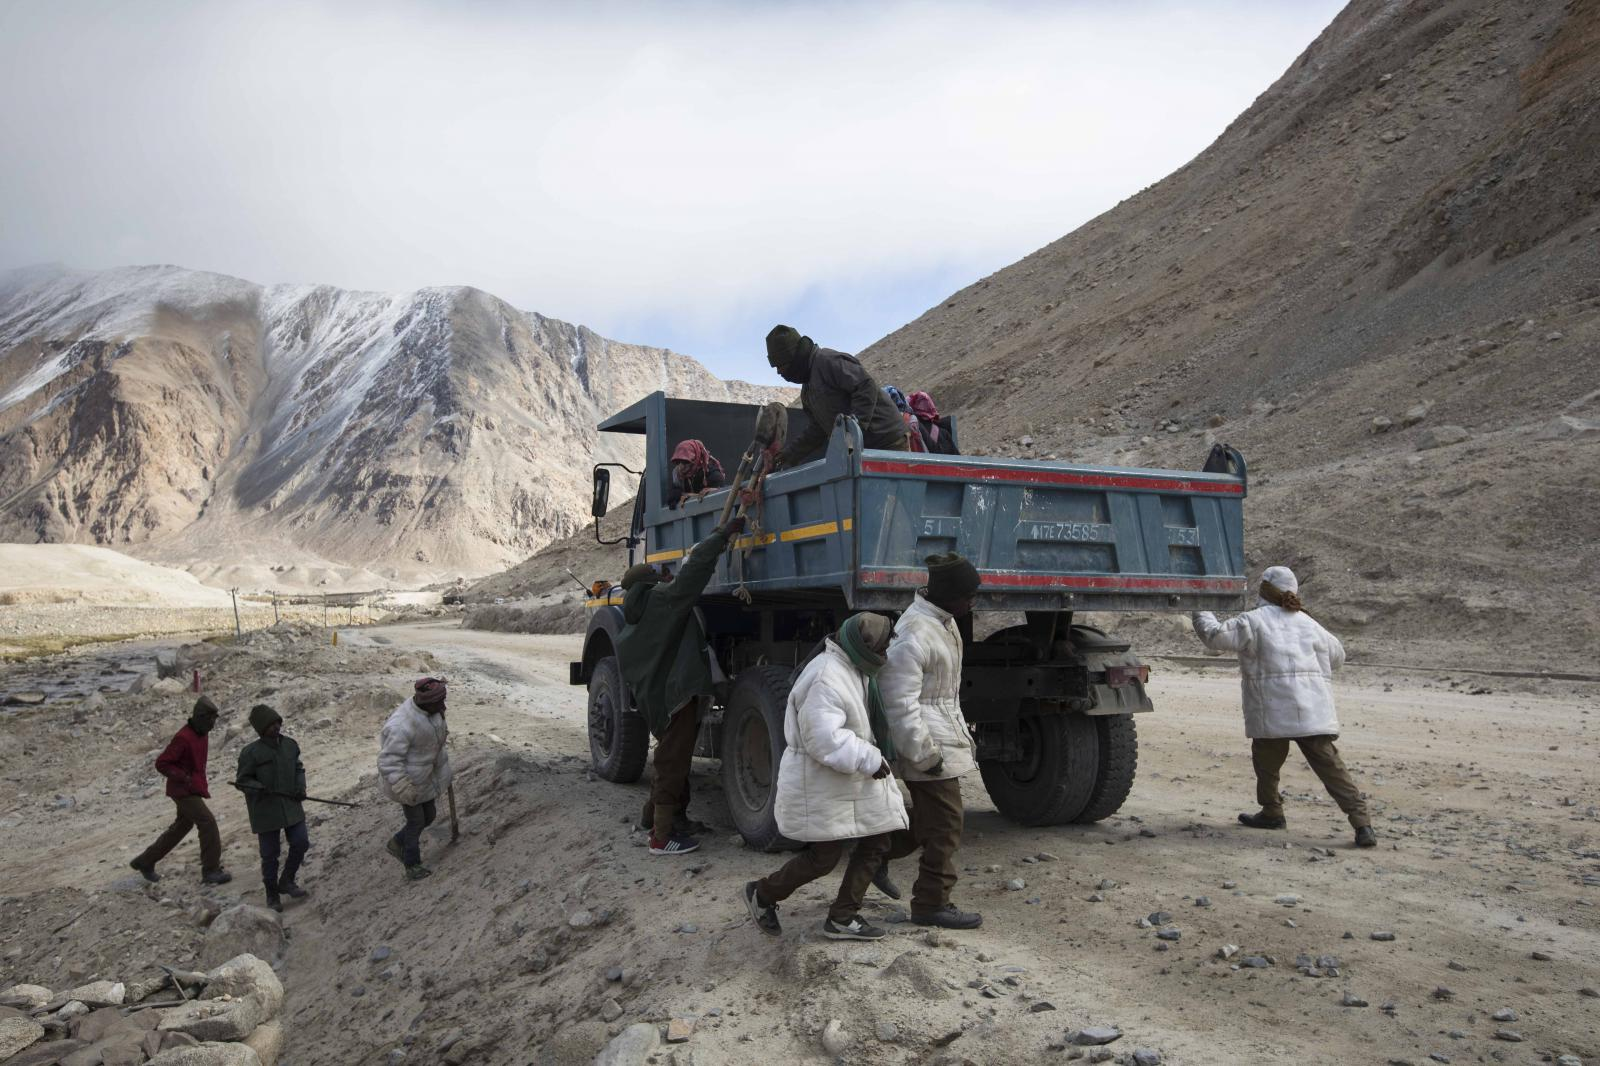 Road maintenance workers from Jharkhand jump at the buck of a truck collecting them in the morning from their campsite near Tangtse village be in northern India's Ladakh region.